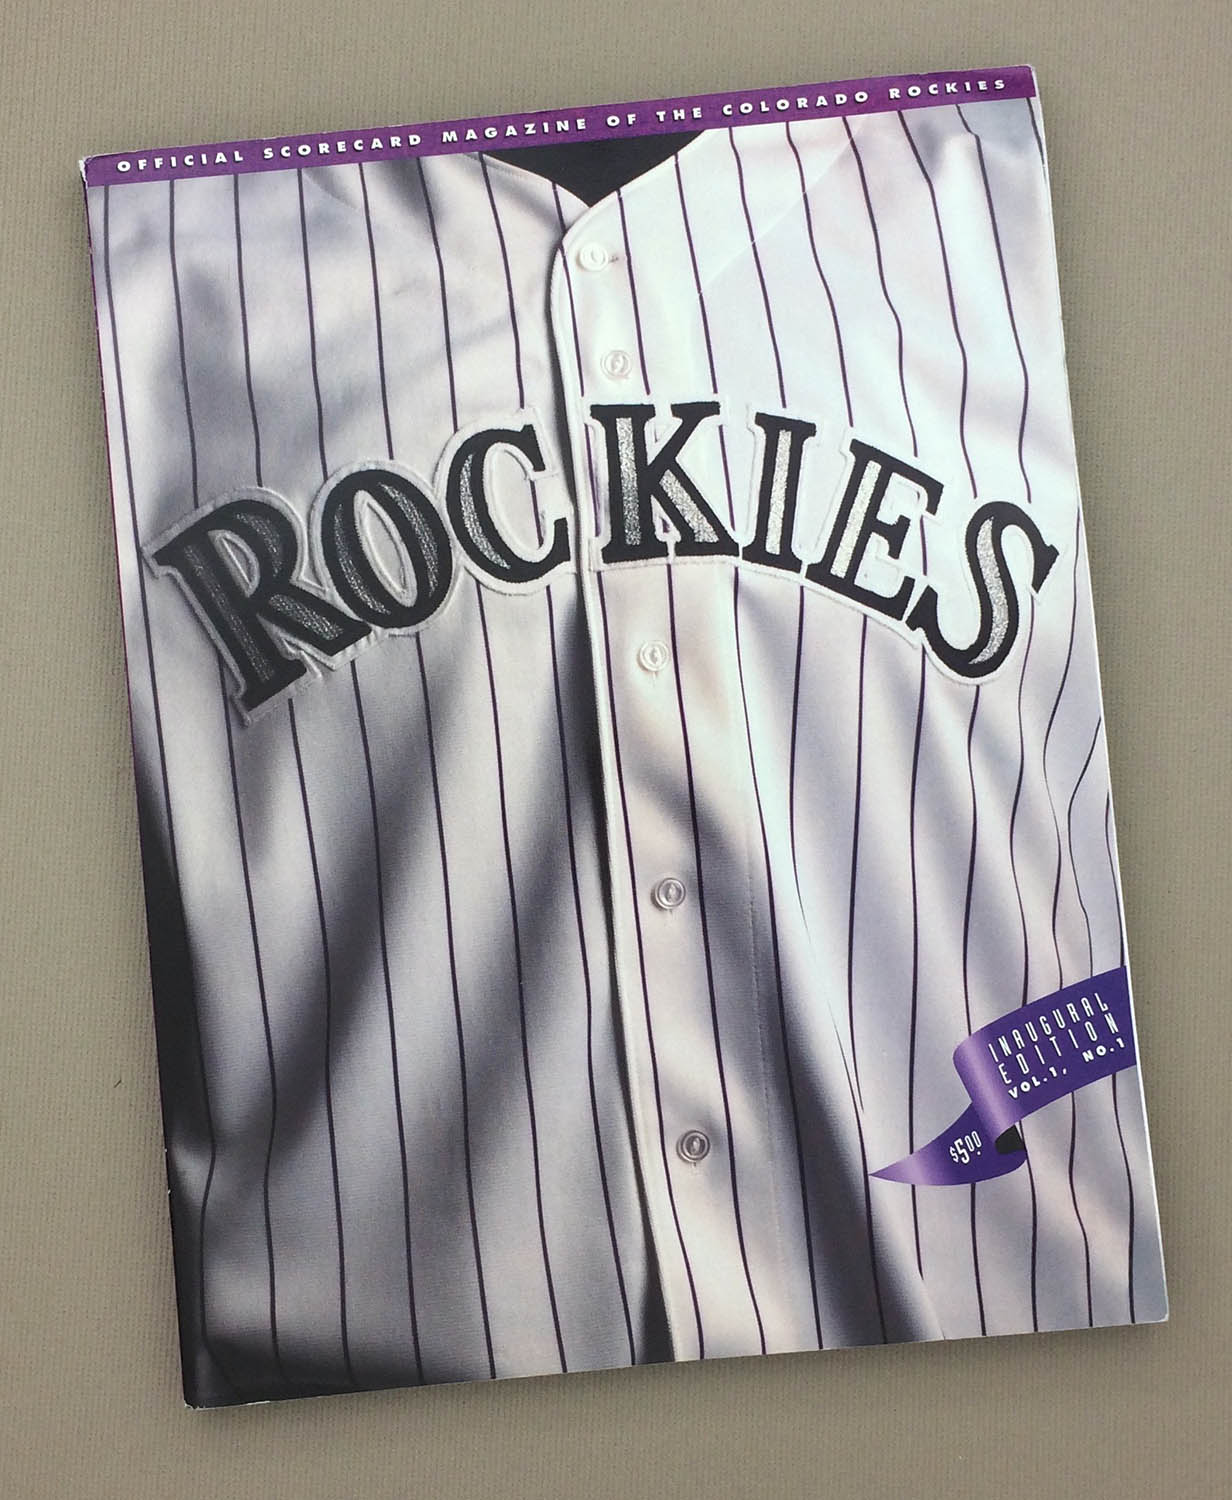 Colorado Rockies '93 Inaugural scorecard